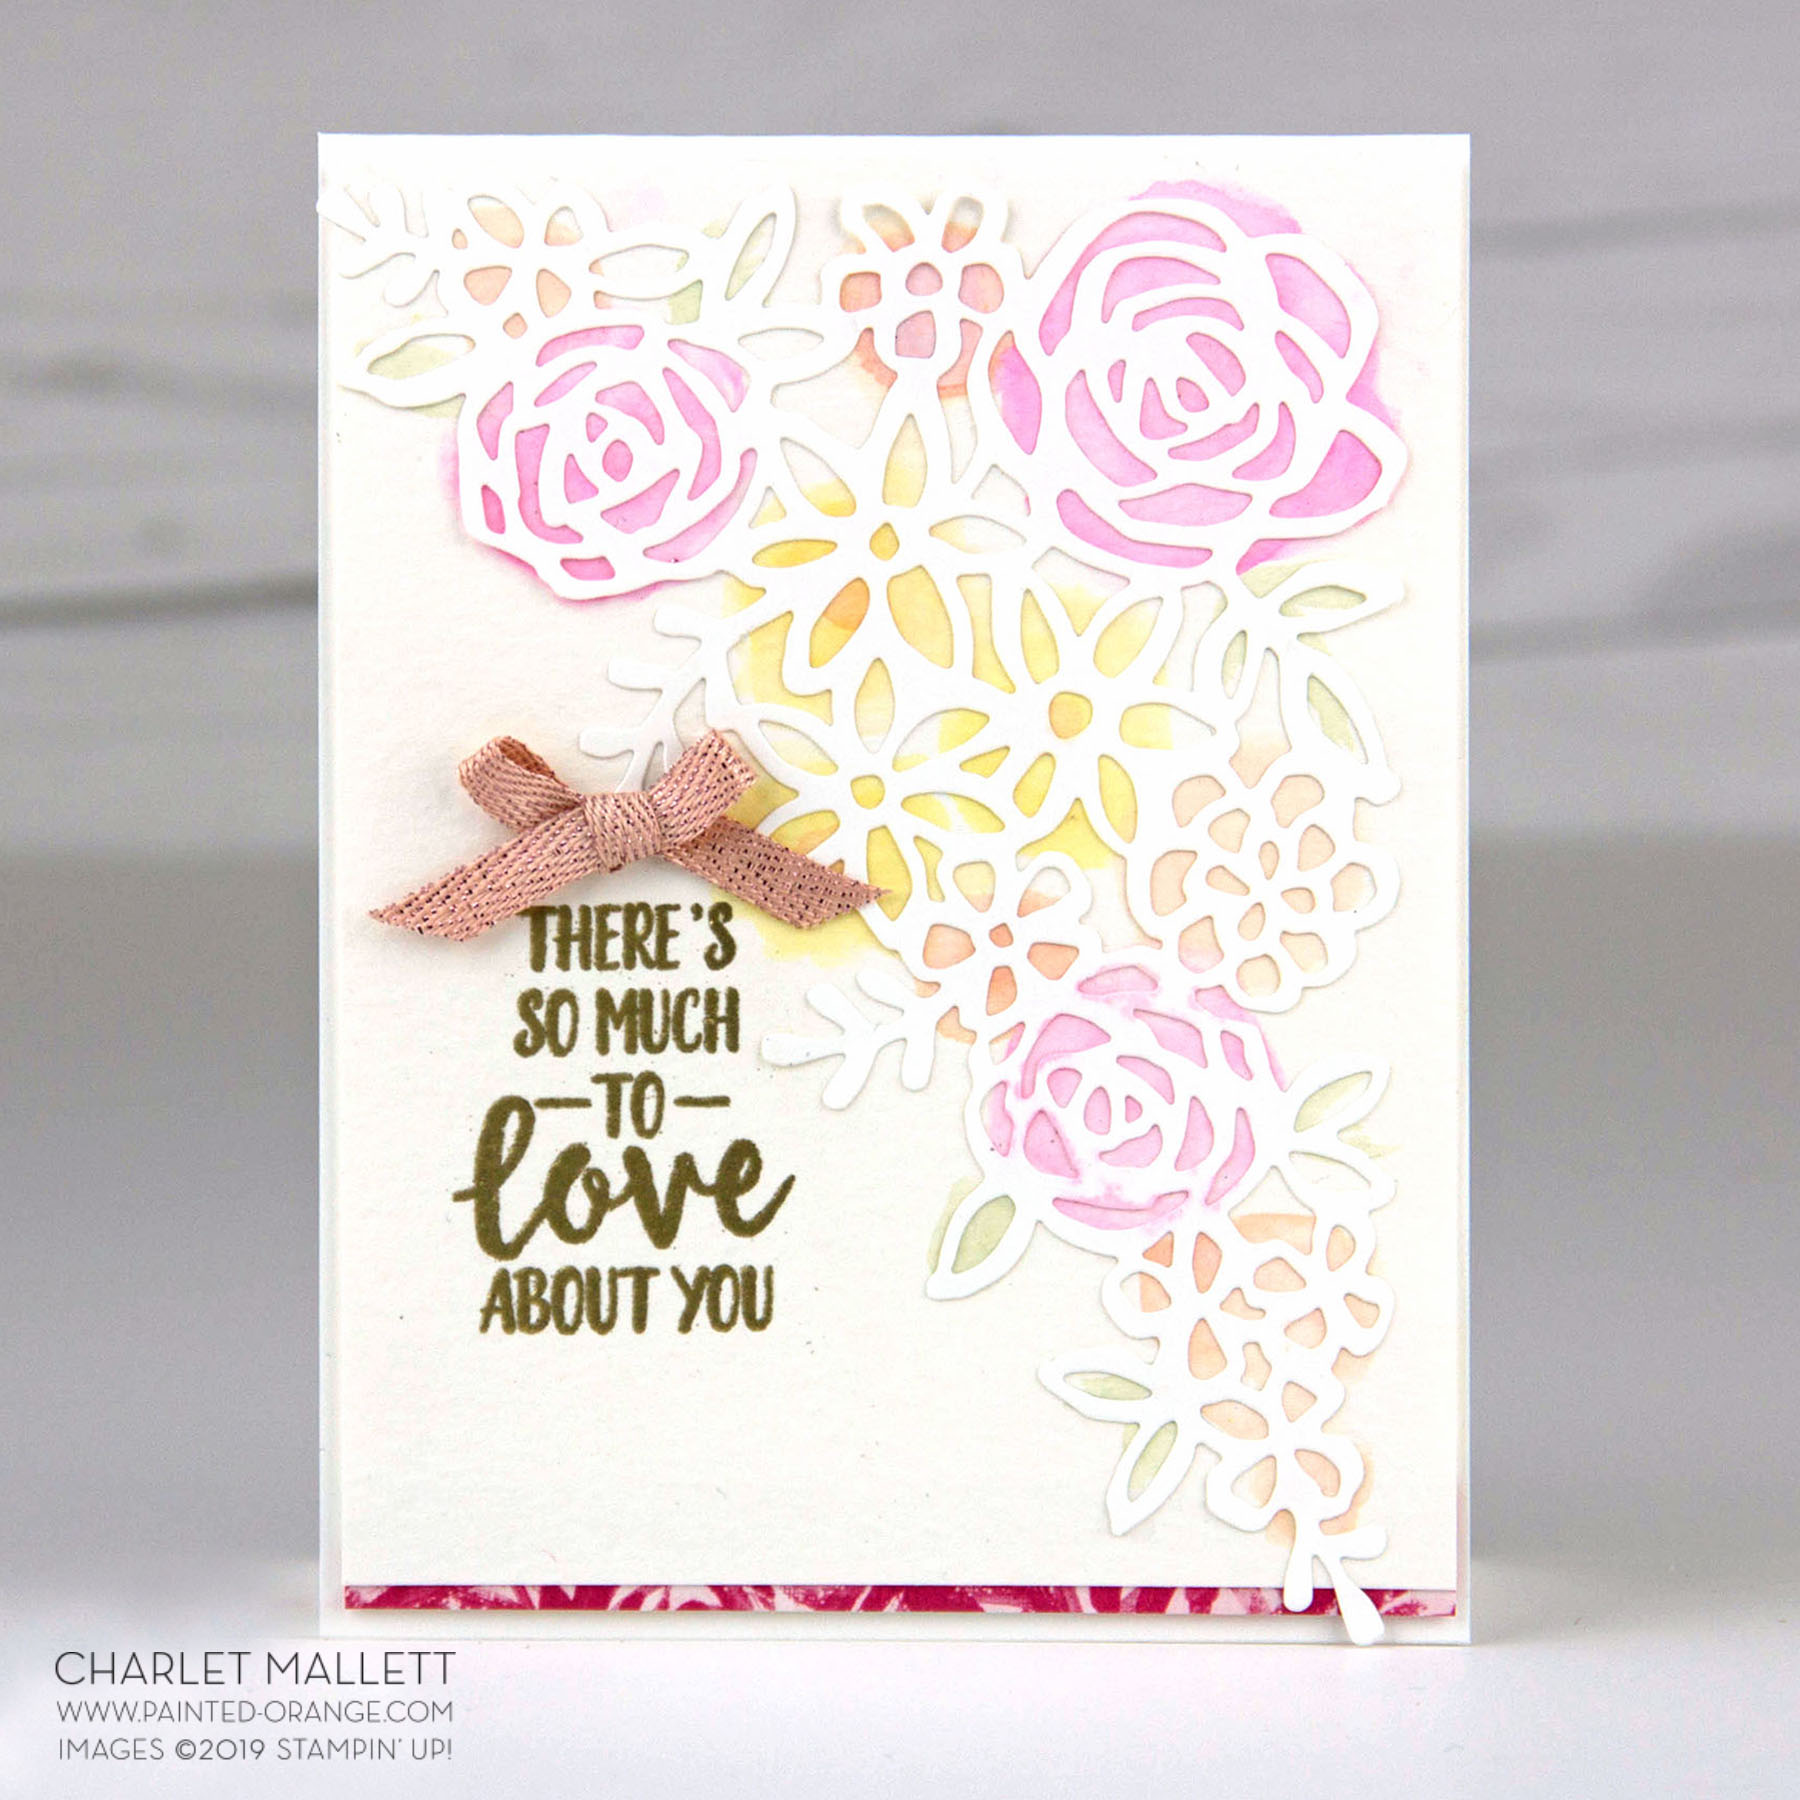 Abstract Impressions Card - Charlet Mallett, Stampin' Up!